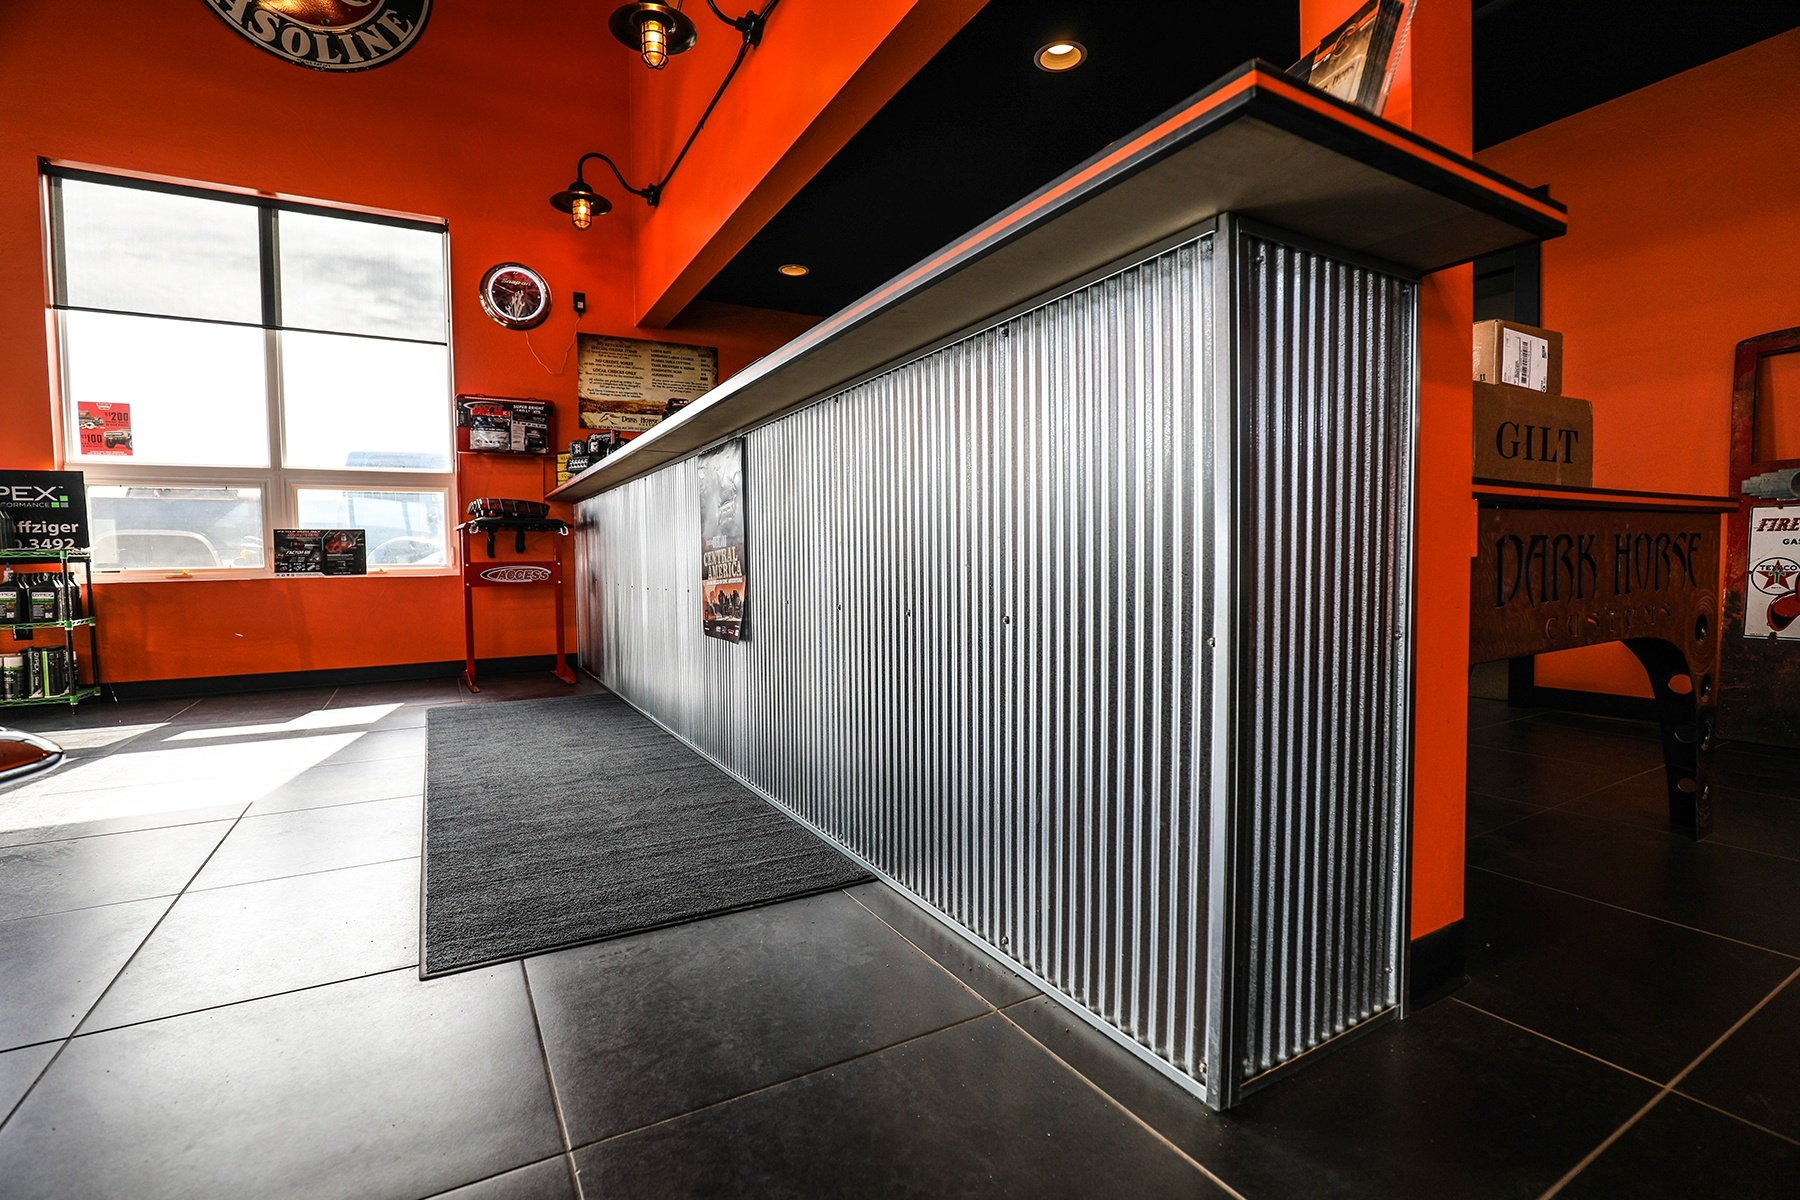 1 4 corrugated metal panel for interior wall or decorative